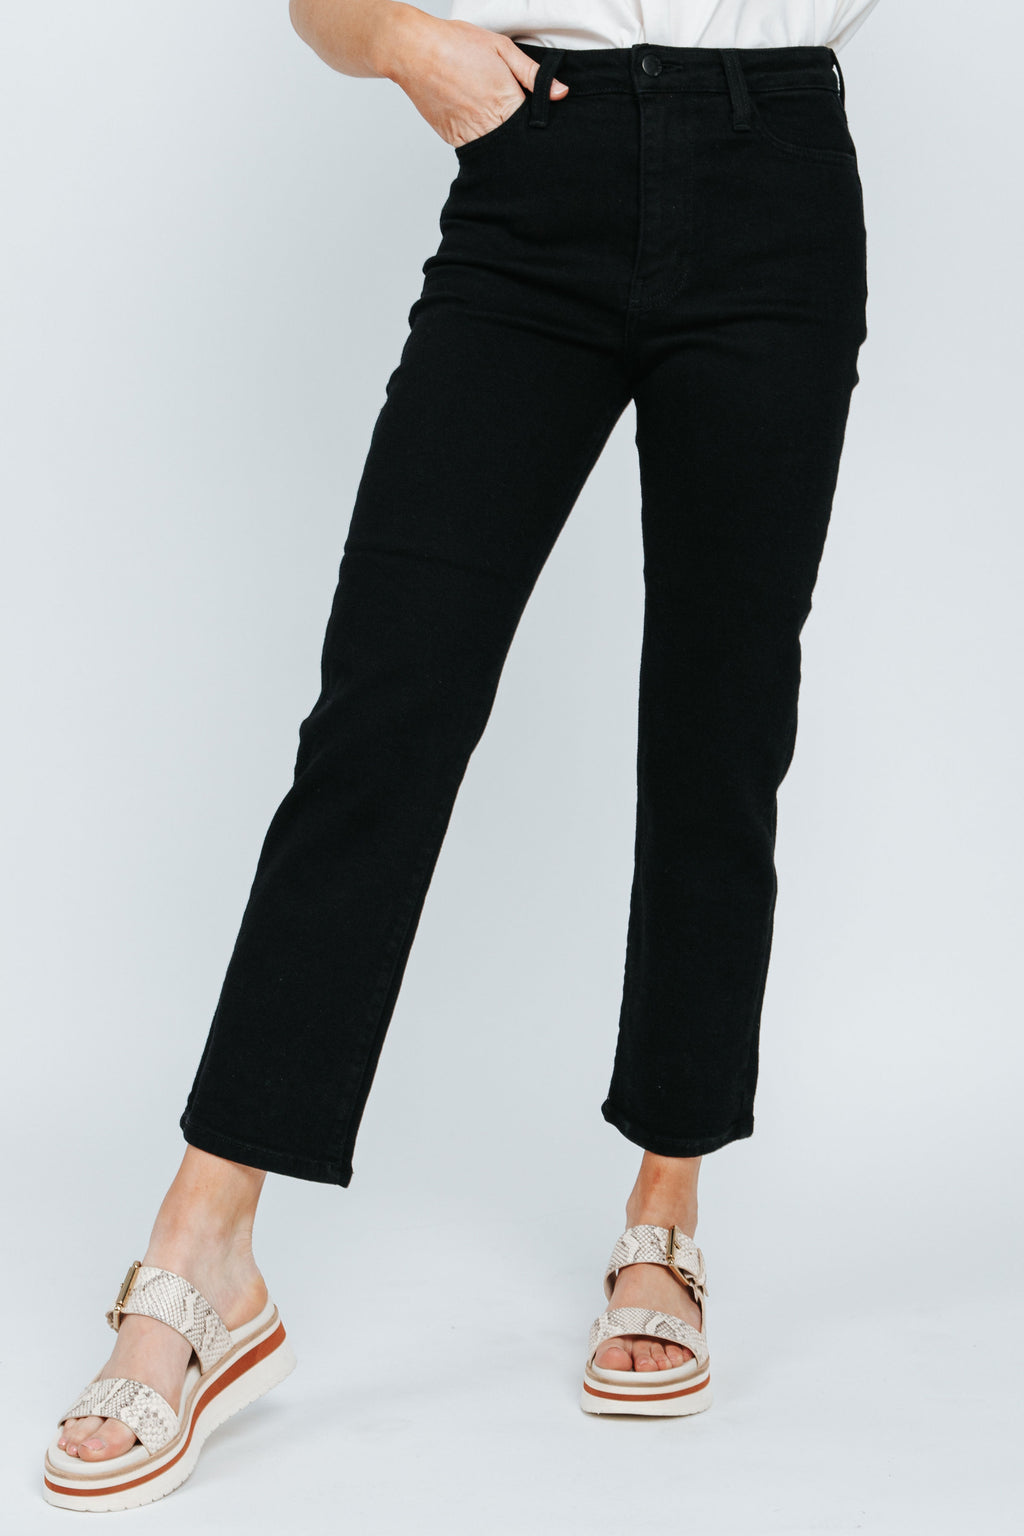 Letter To Juliet: The Siena High Rise Straight Jean in Black, studio shoot; front view